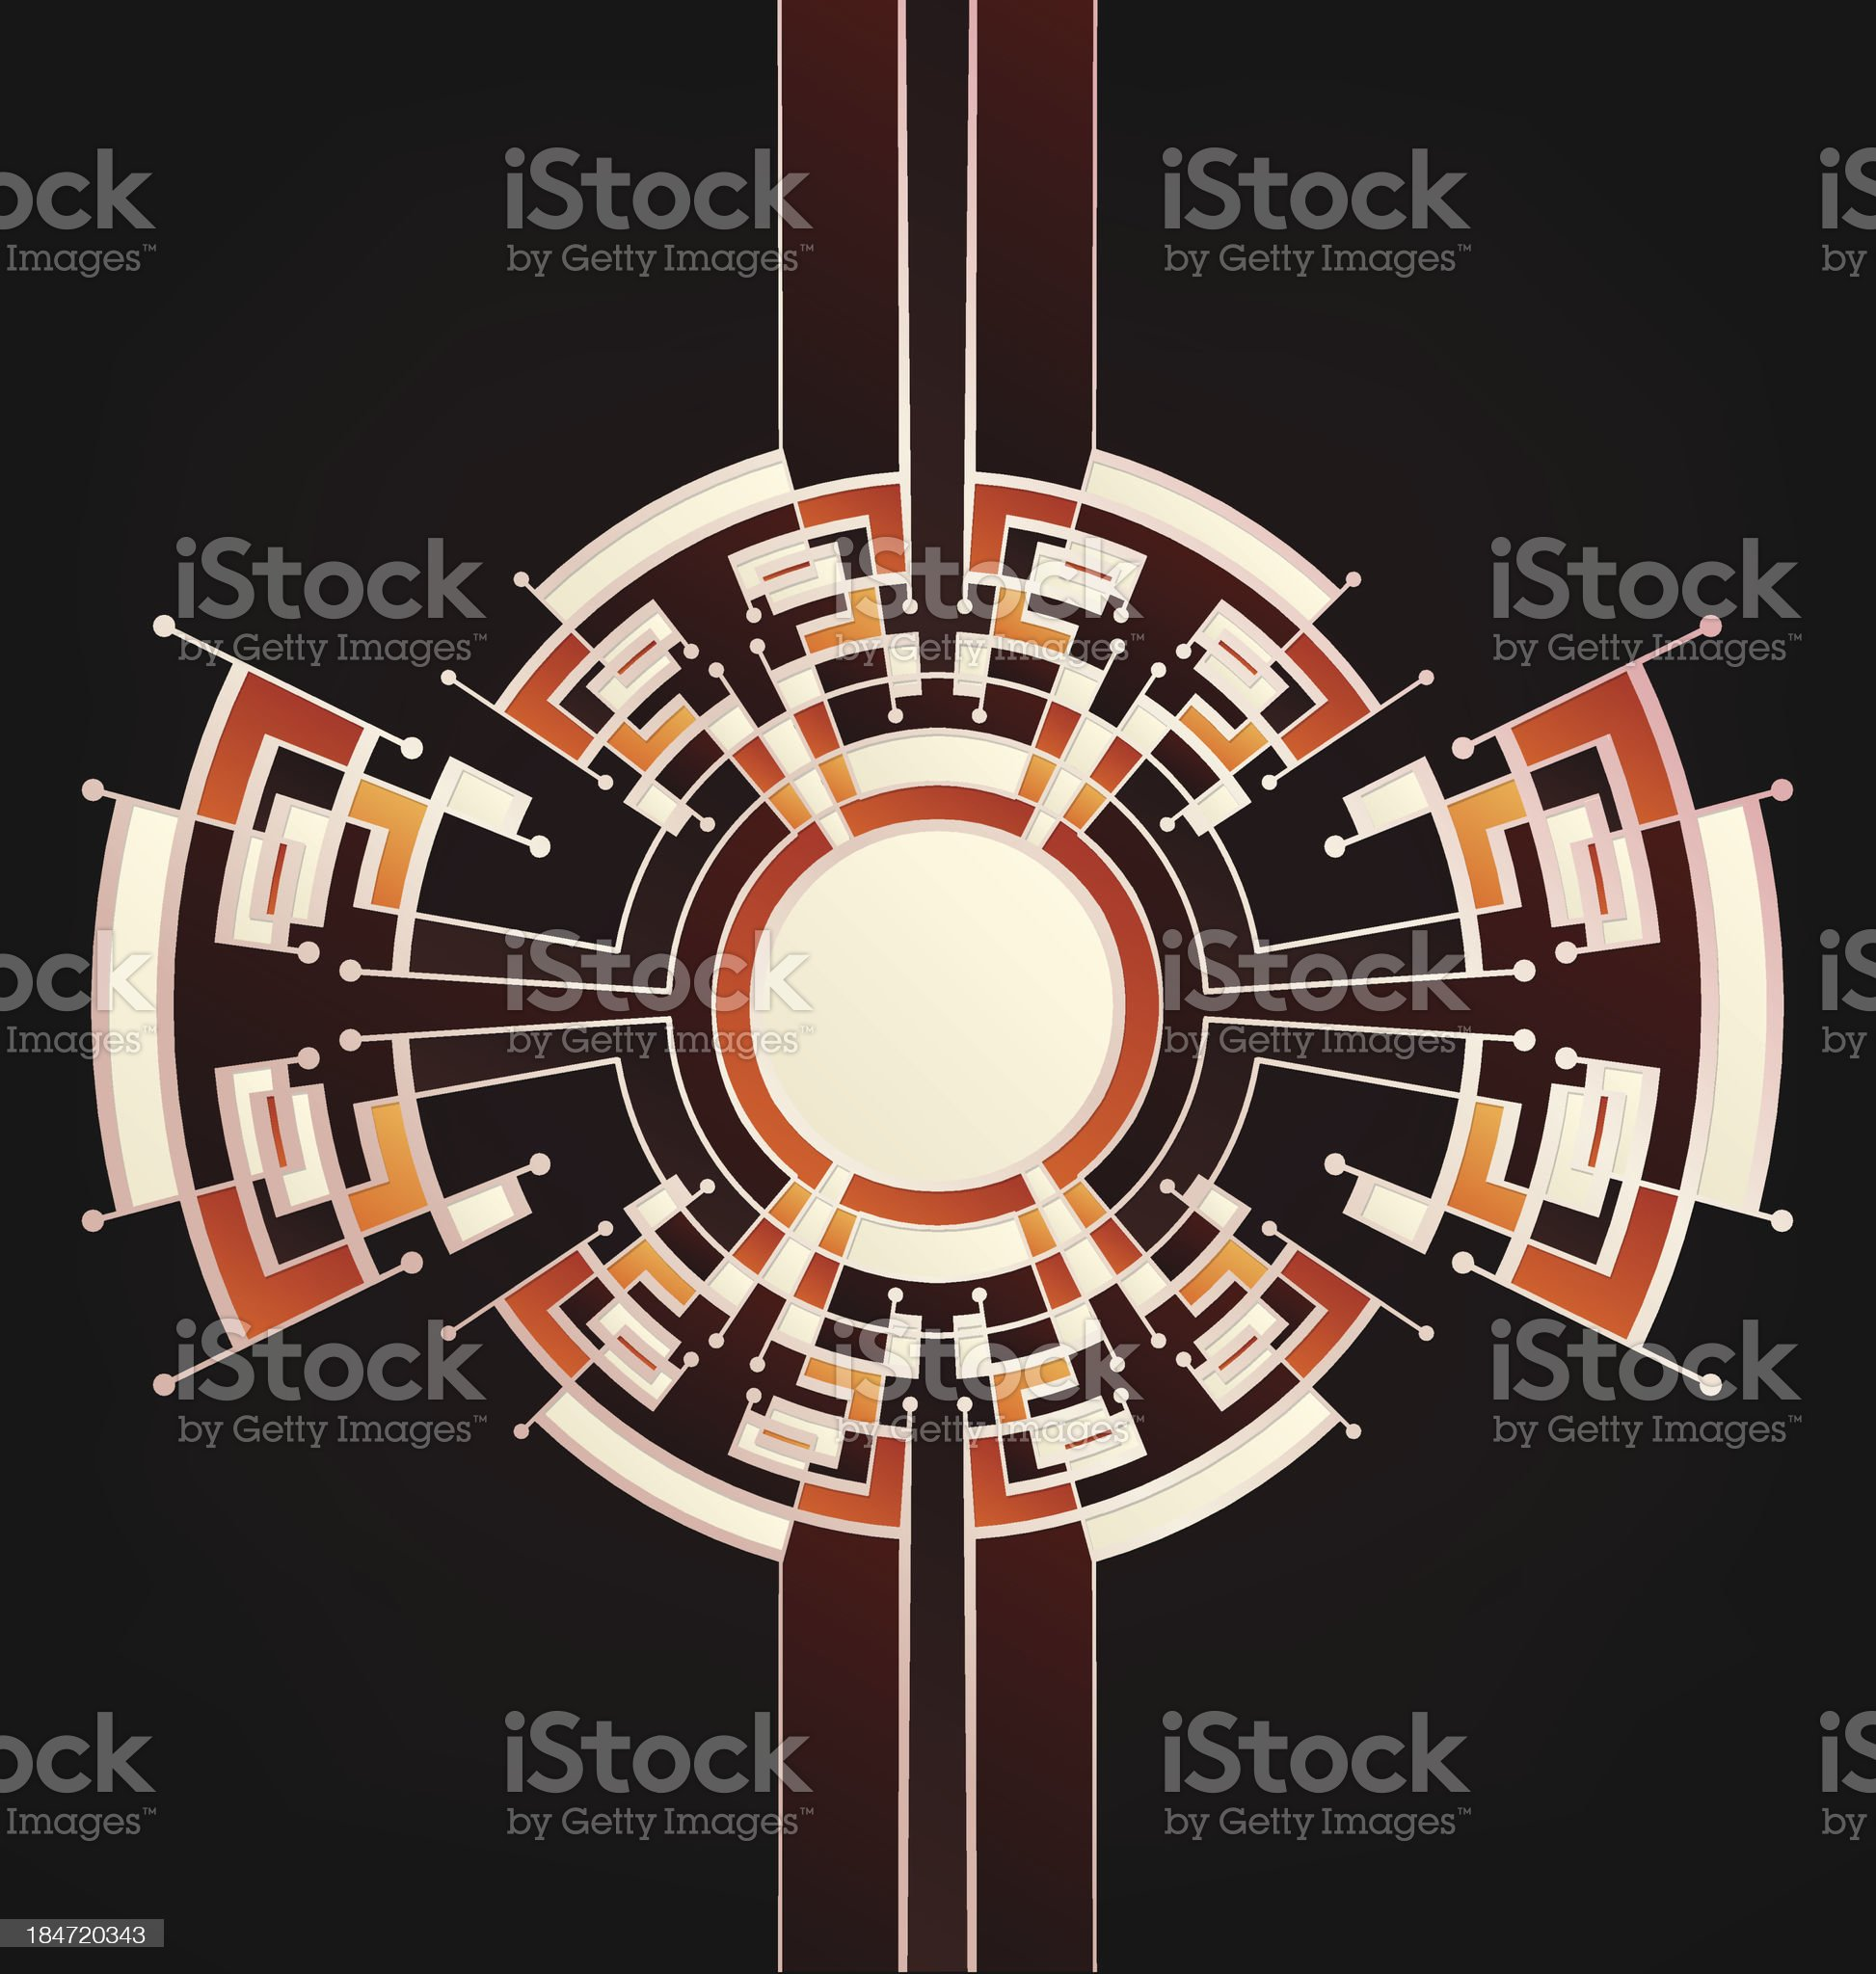 Retro Art Deco stylized background royalty-free stock vector art